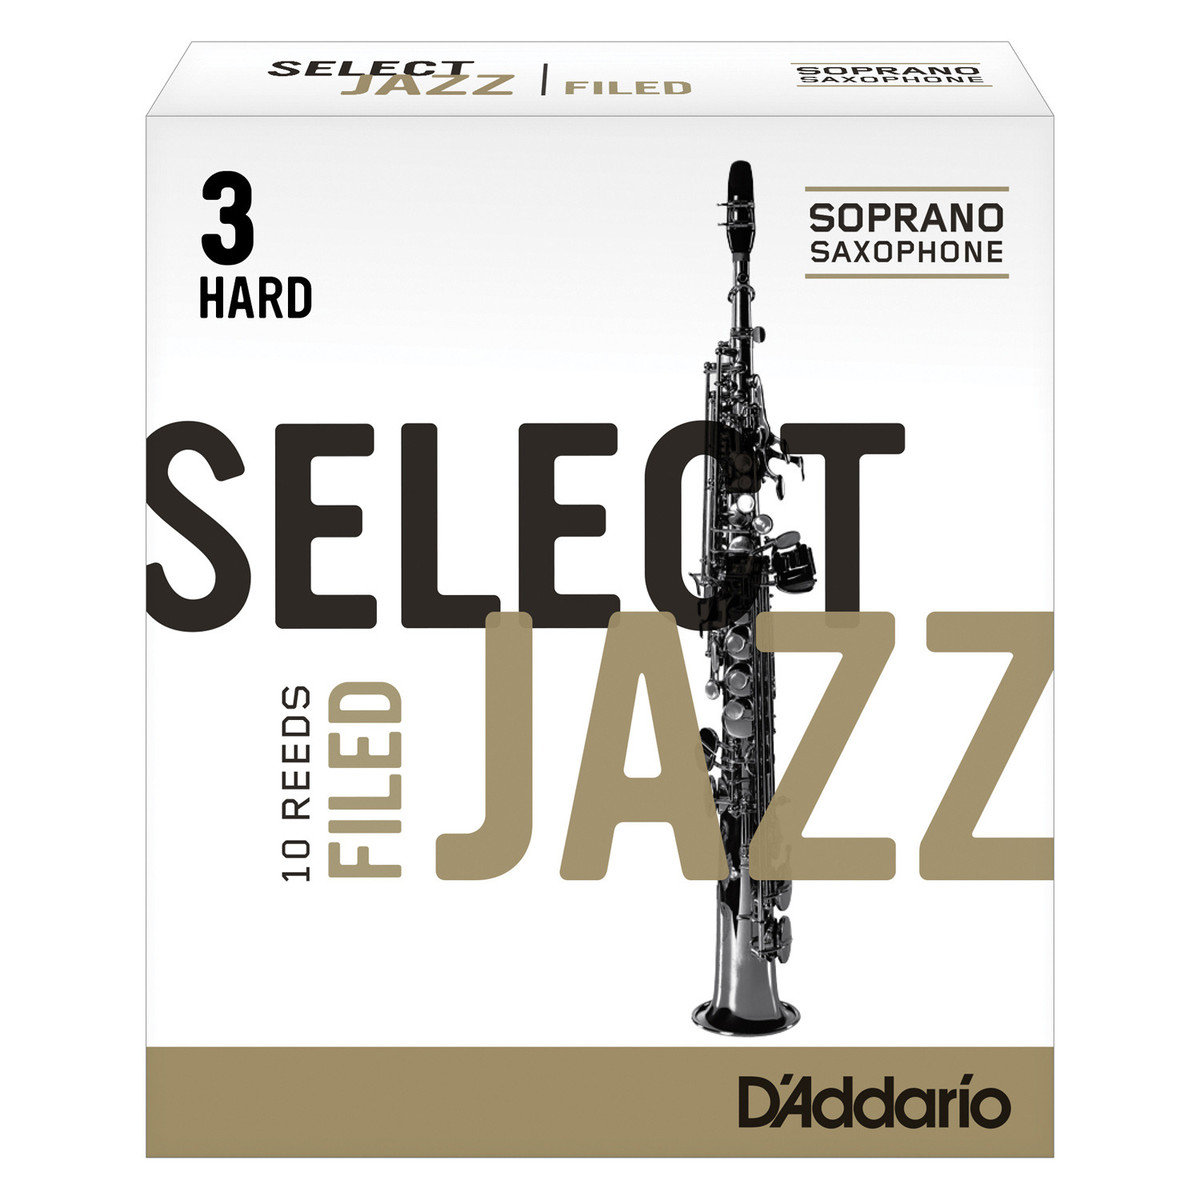 D'Addario Select Jazz Filed plátek pro sopran saxofon tvrdost 3H